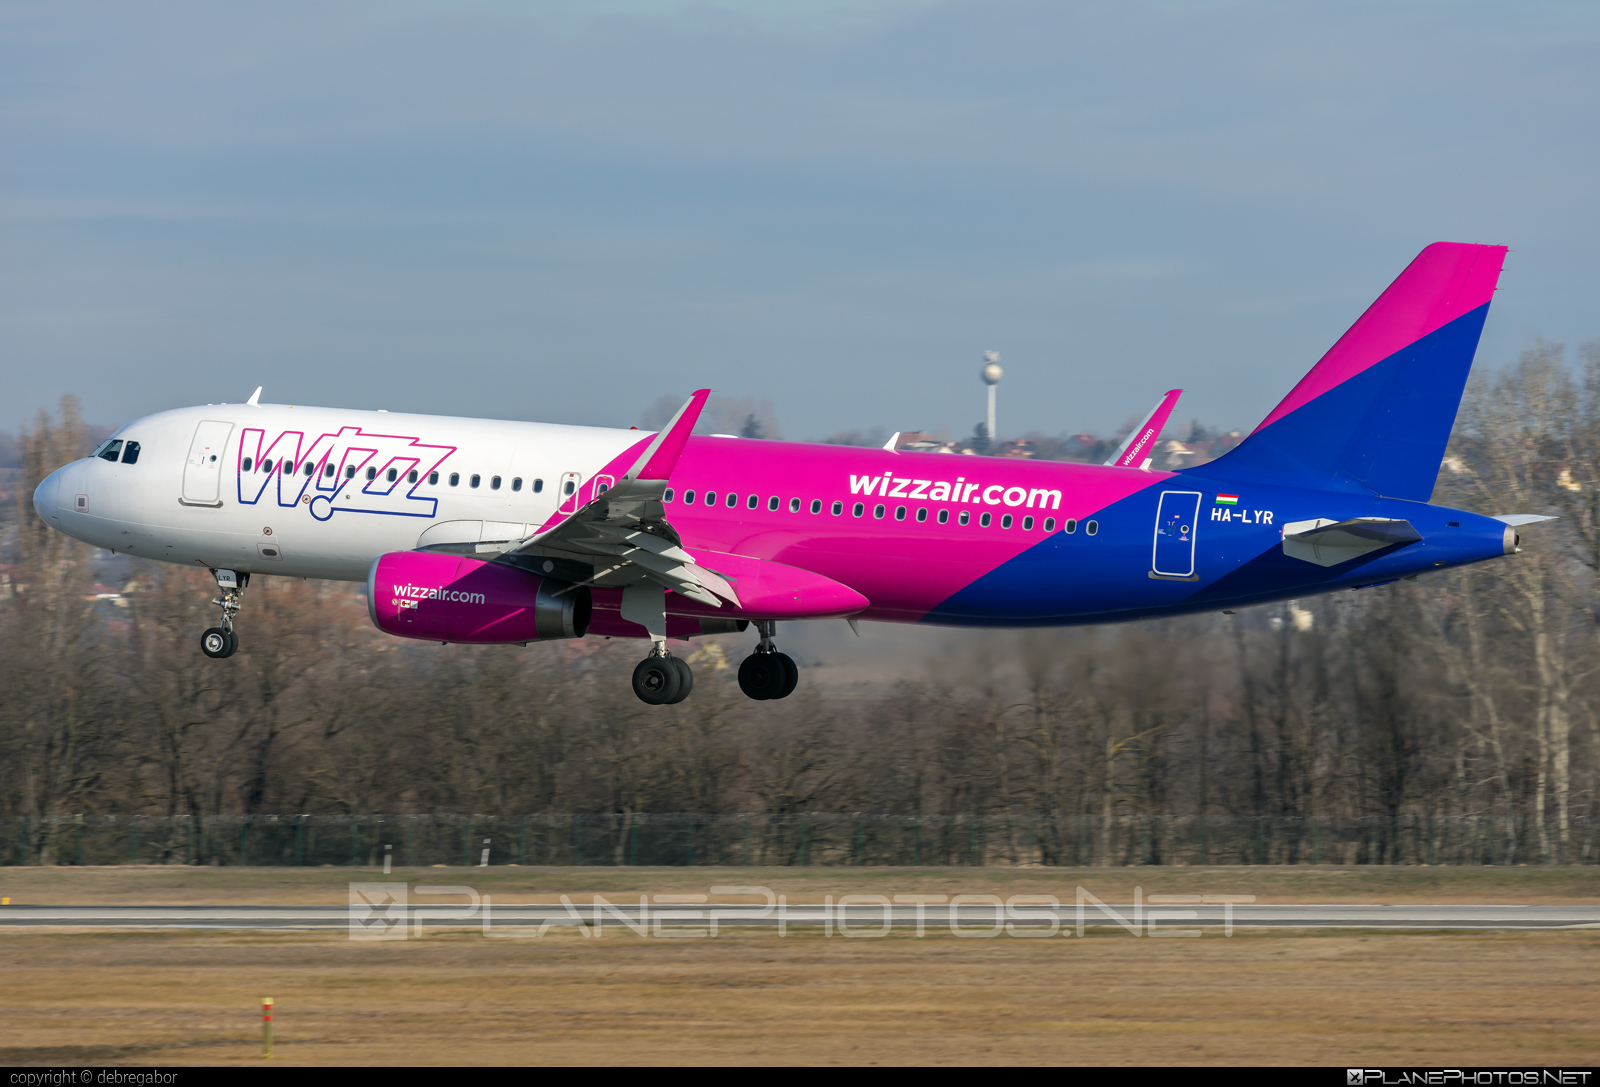 Airbus A320-232 - HA-LYR operated by Wizz Air #a320 #a320family #airbus #airbus320 #wizz #wizzair